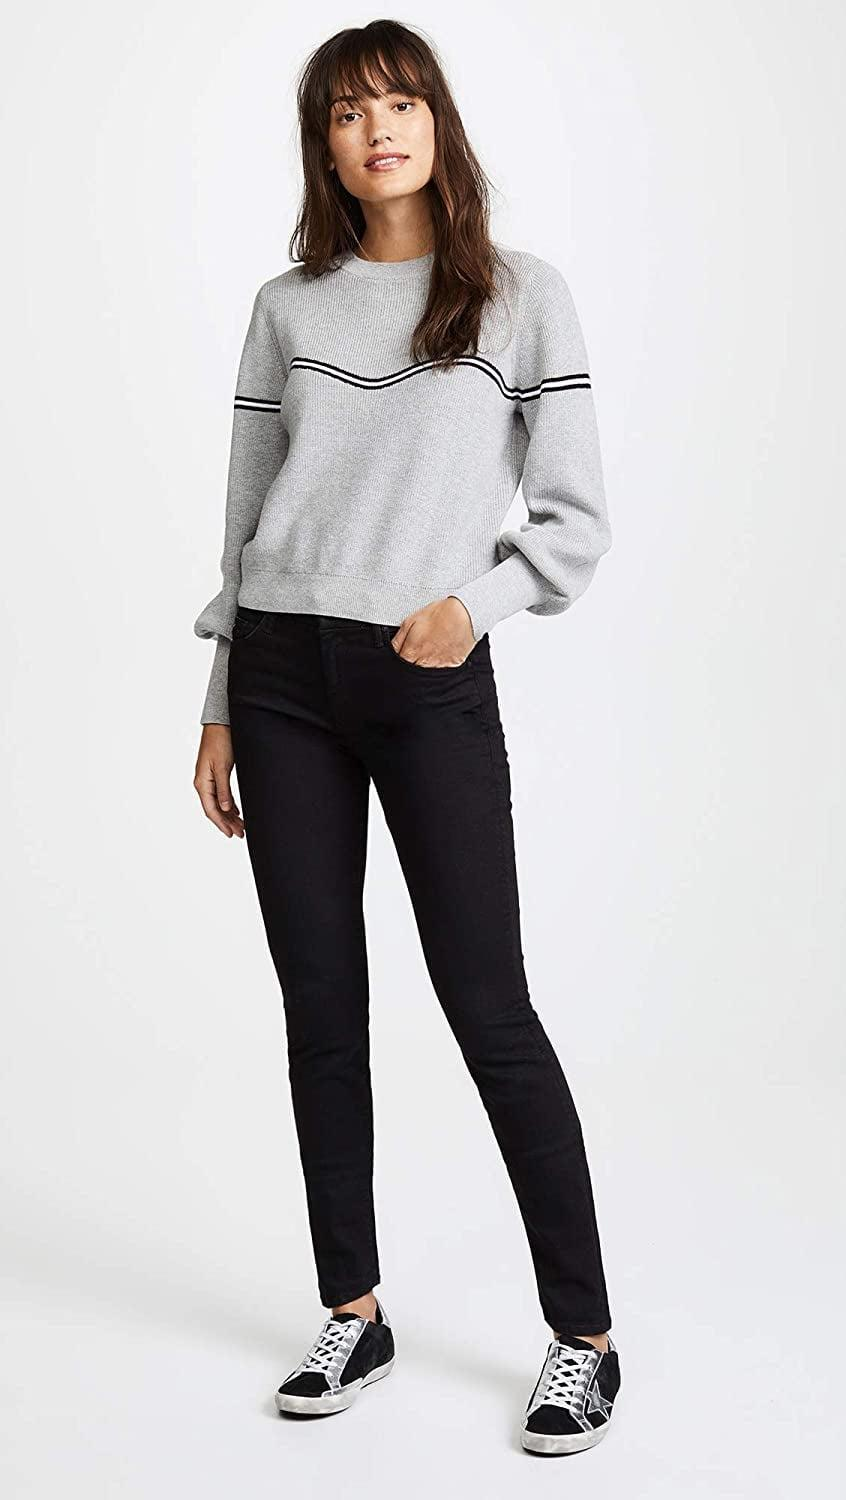 """<p>You can't go wrong with these <a href=""""https://www.popsugar.com/buy/Mother-Women-Looker-Skinny-Jeans-583838?p_name=Mother%20Women%27s%20The%20Looker%20Skinny%20Jeans&retailer=amazon.com&pid=583838&price=147&evar1=fab%3Aus&evar9=47565691&evar98=https%3A%2F%2Fwww.popsugar.com%2Fphoto-gallery%2F47565691%2Fimage%2F47565692%2FMother-Women-Looker-Skinny-Jeans&list1=shopping%2Camazon%2Cdenim%2Csale%2Cget%20the%20look%2Cmeghan%20markle%2Csale%20shopping%2Ccelebrity%20style&prop13=api&pdata=1"""" class=""""link rapid-noclick-resp"""" rel=""""nofollow noopener"""" target=""""_blank"""" data-ylk=""""slk:Mother Women's The Looker Skinny Jeans"""">Mother Women's The Looker Skinny Jeans</a> ($147, originally $196).</p>"""